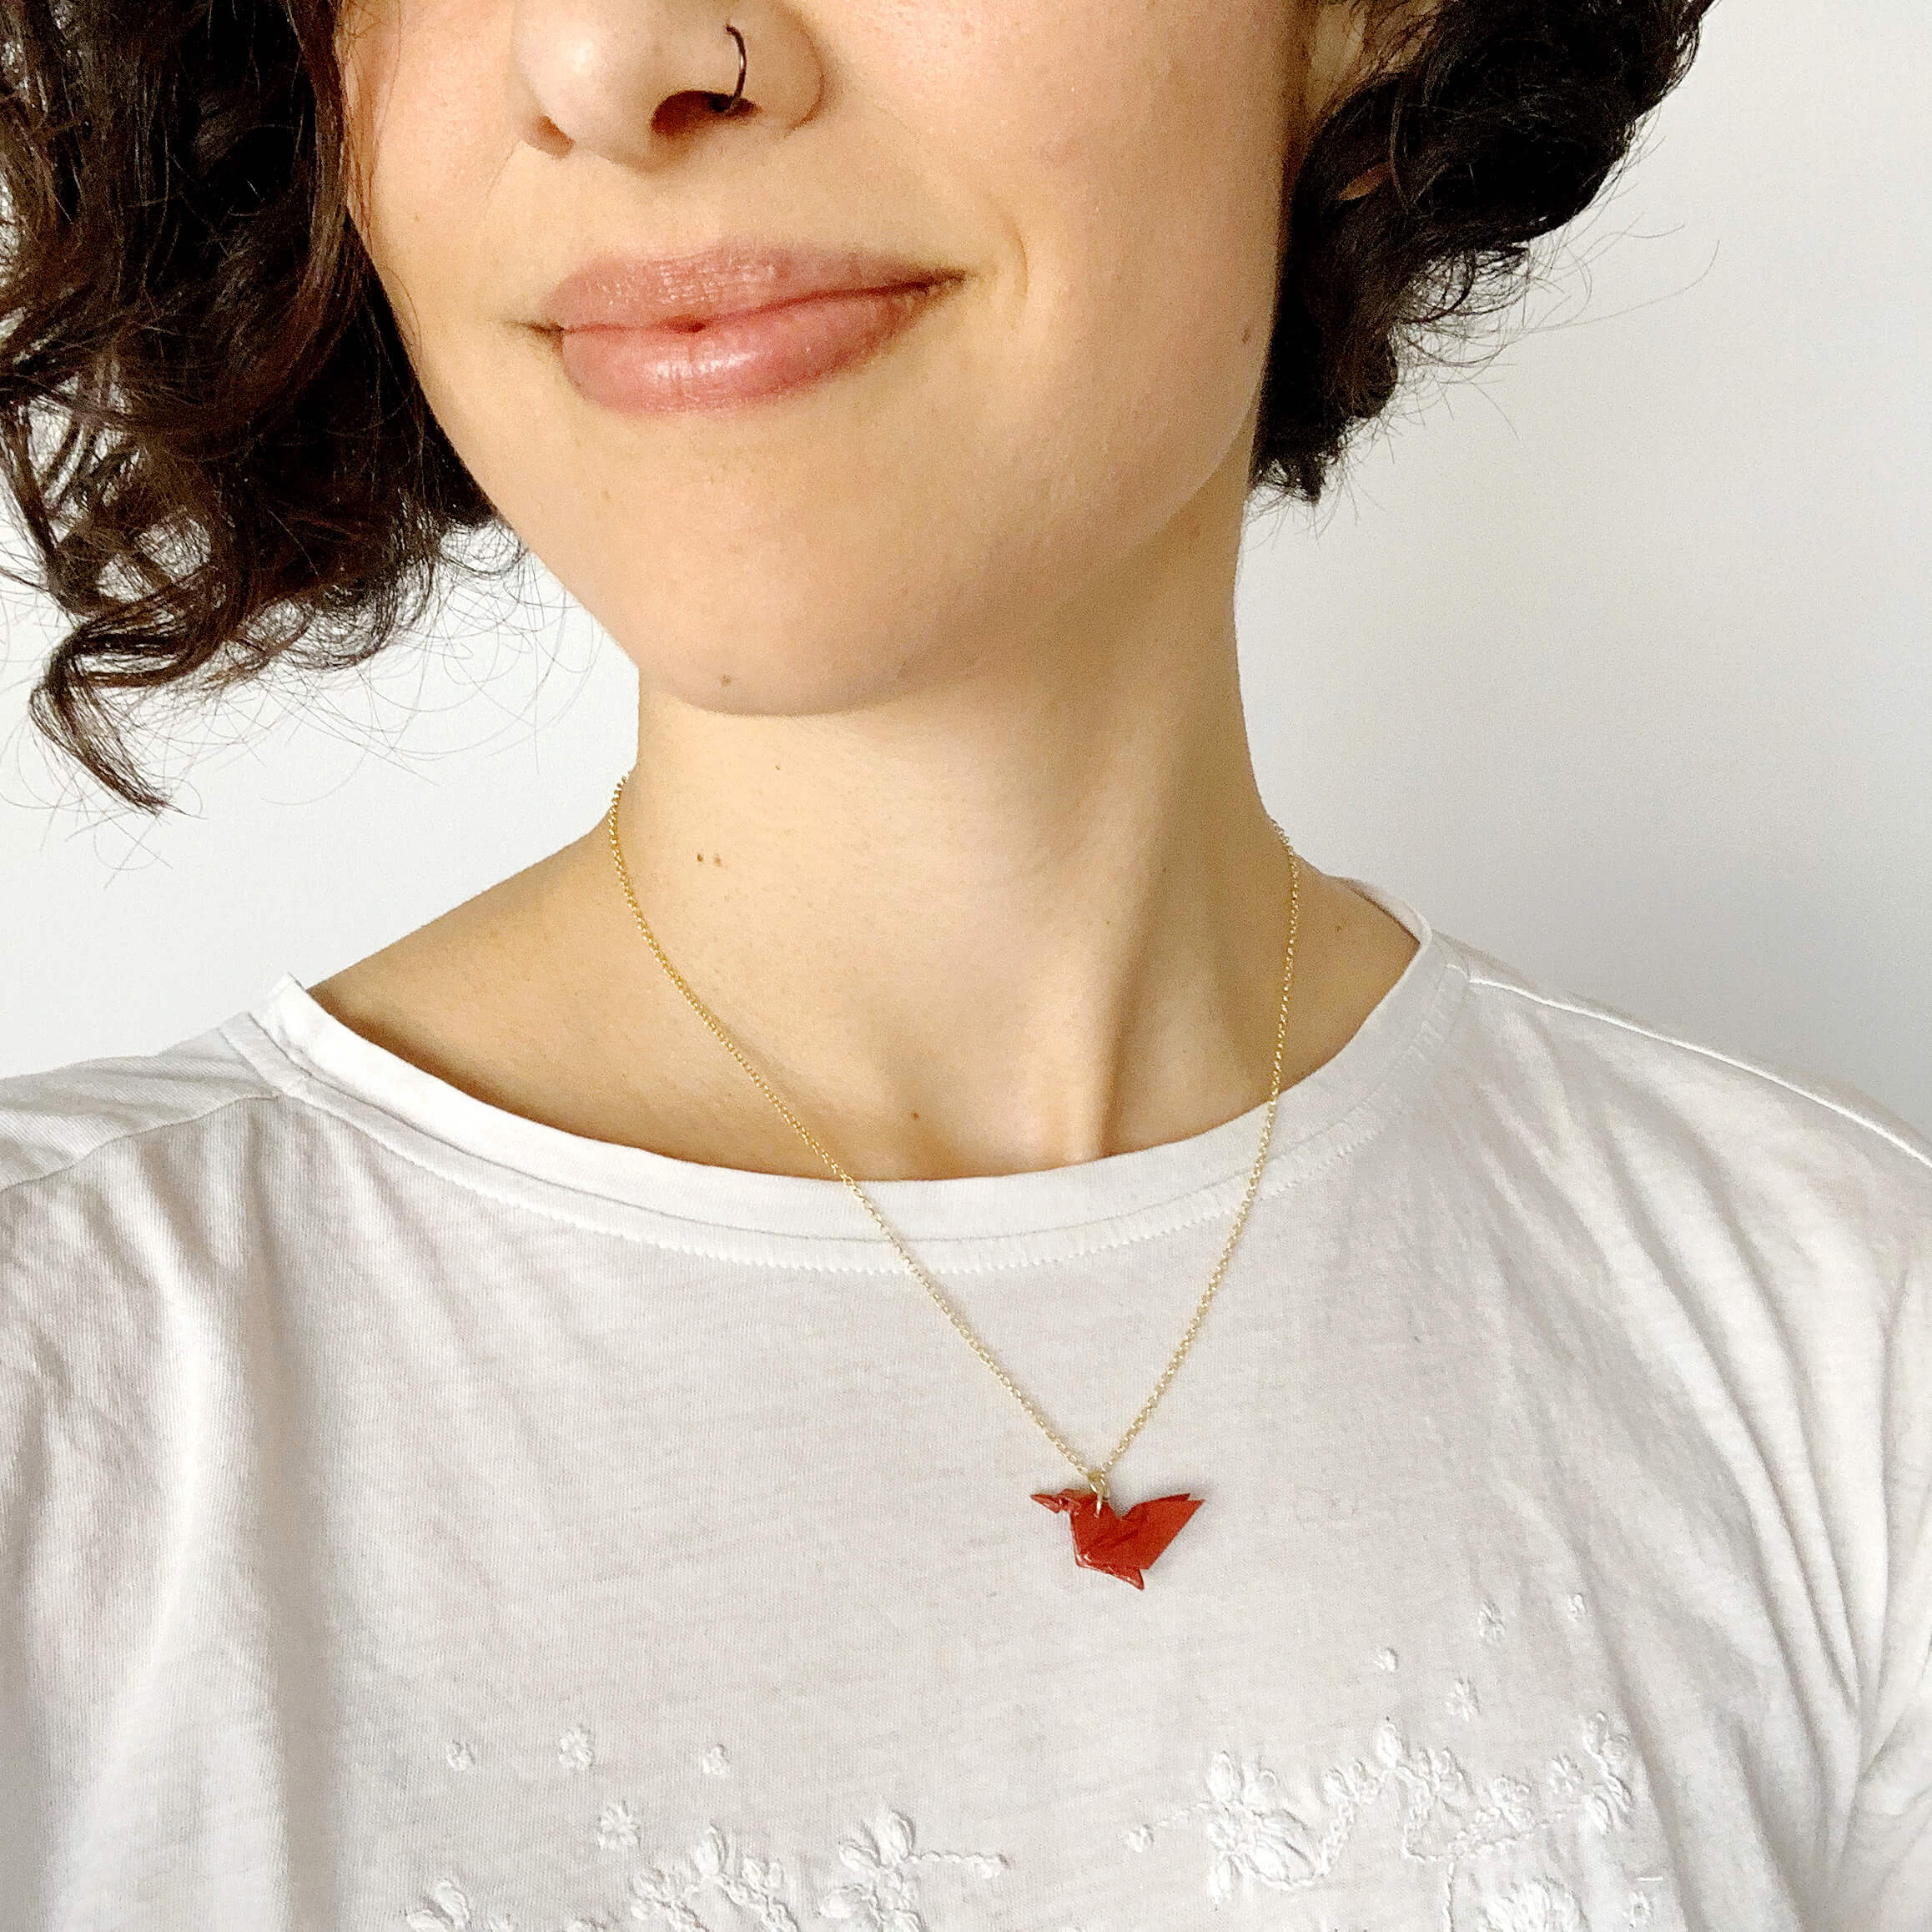 Personalized handmade origami bird necklace